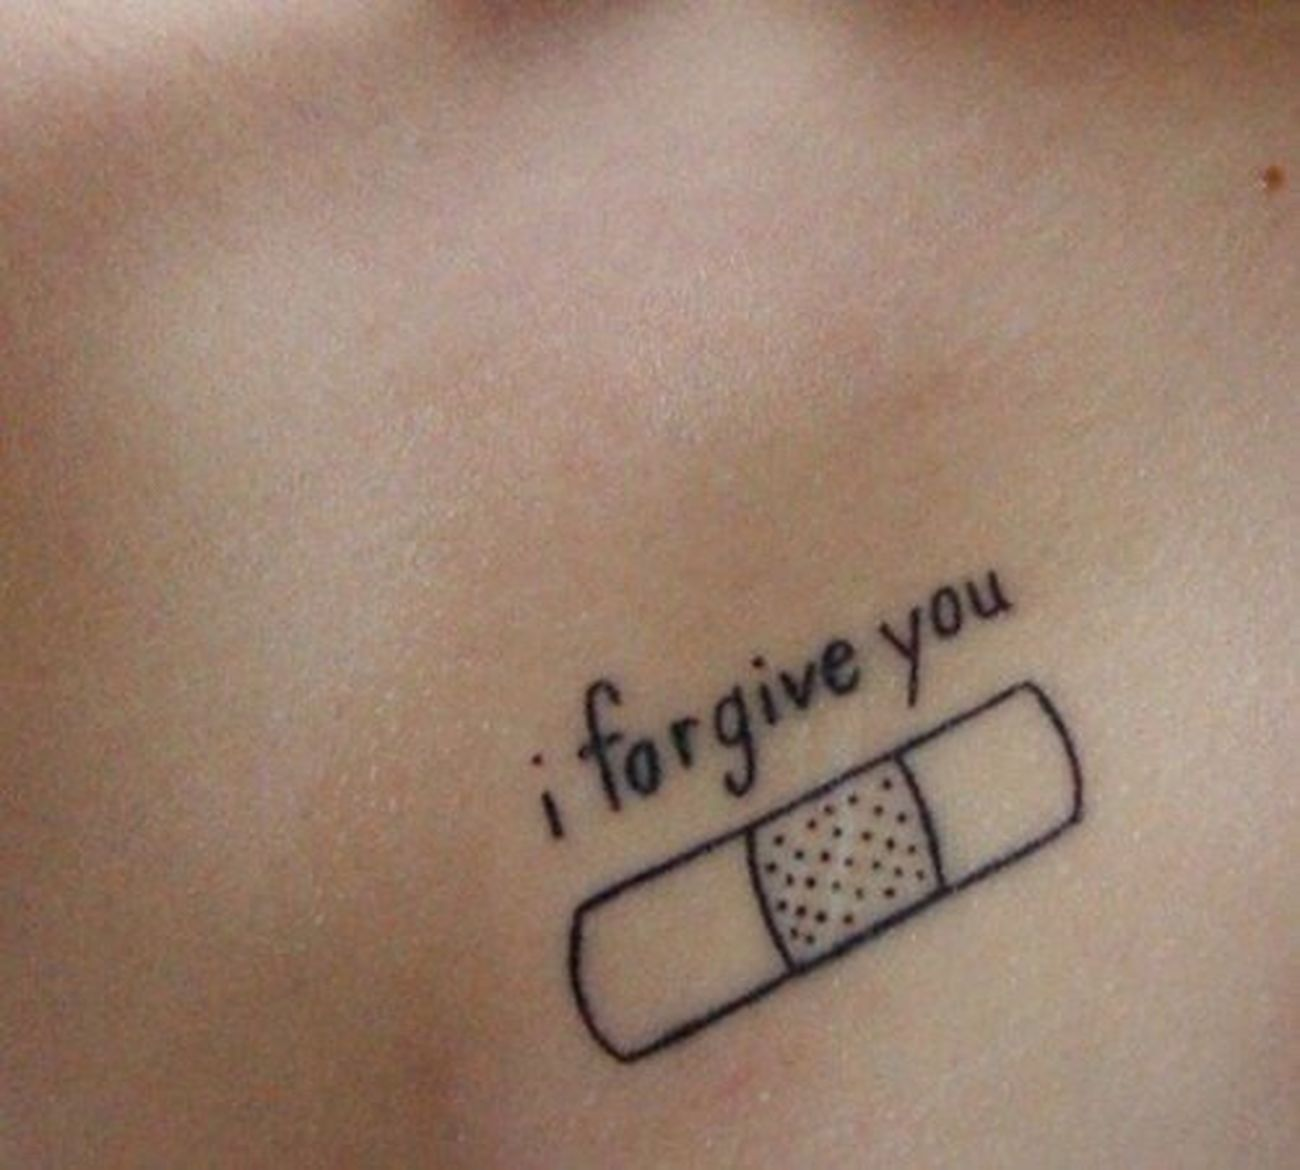 I Forgive You Tattoo Beautiful Ink Bodyart Sick And Cute  Black Love It RAD